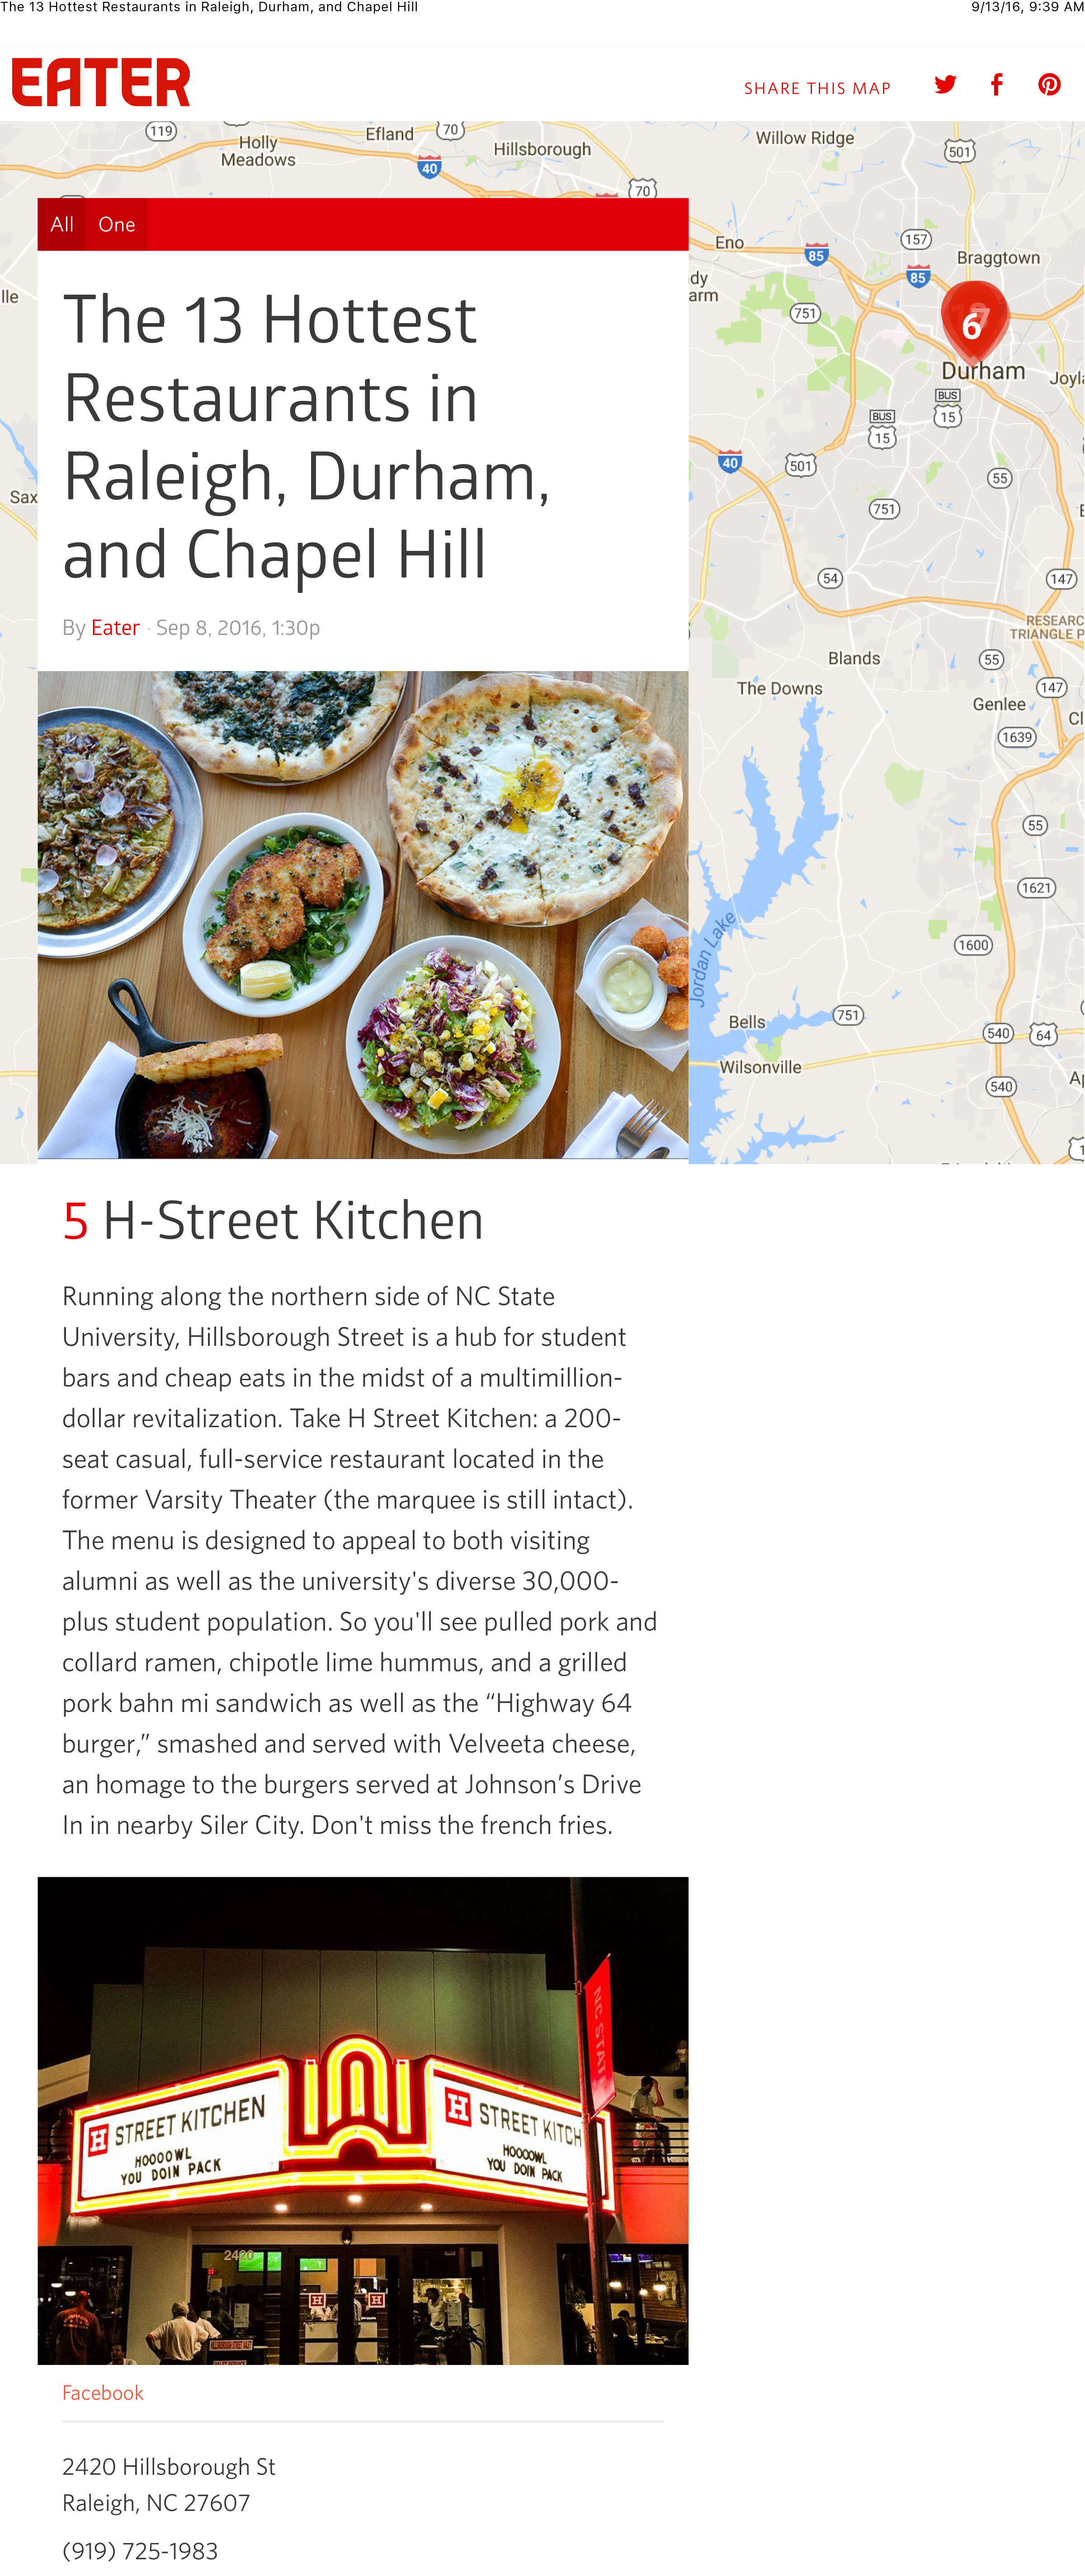 The 13 Hottest Restaurants in Raleigh, Durham, and Chapel Hill (1)-1.jpg